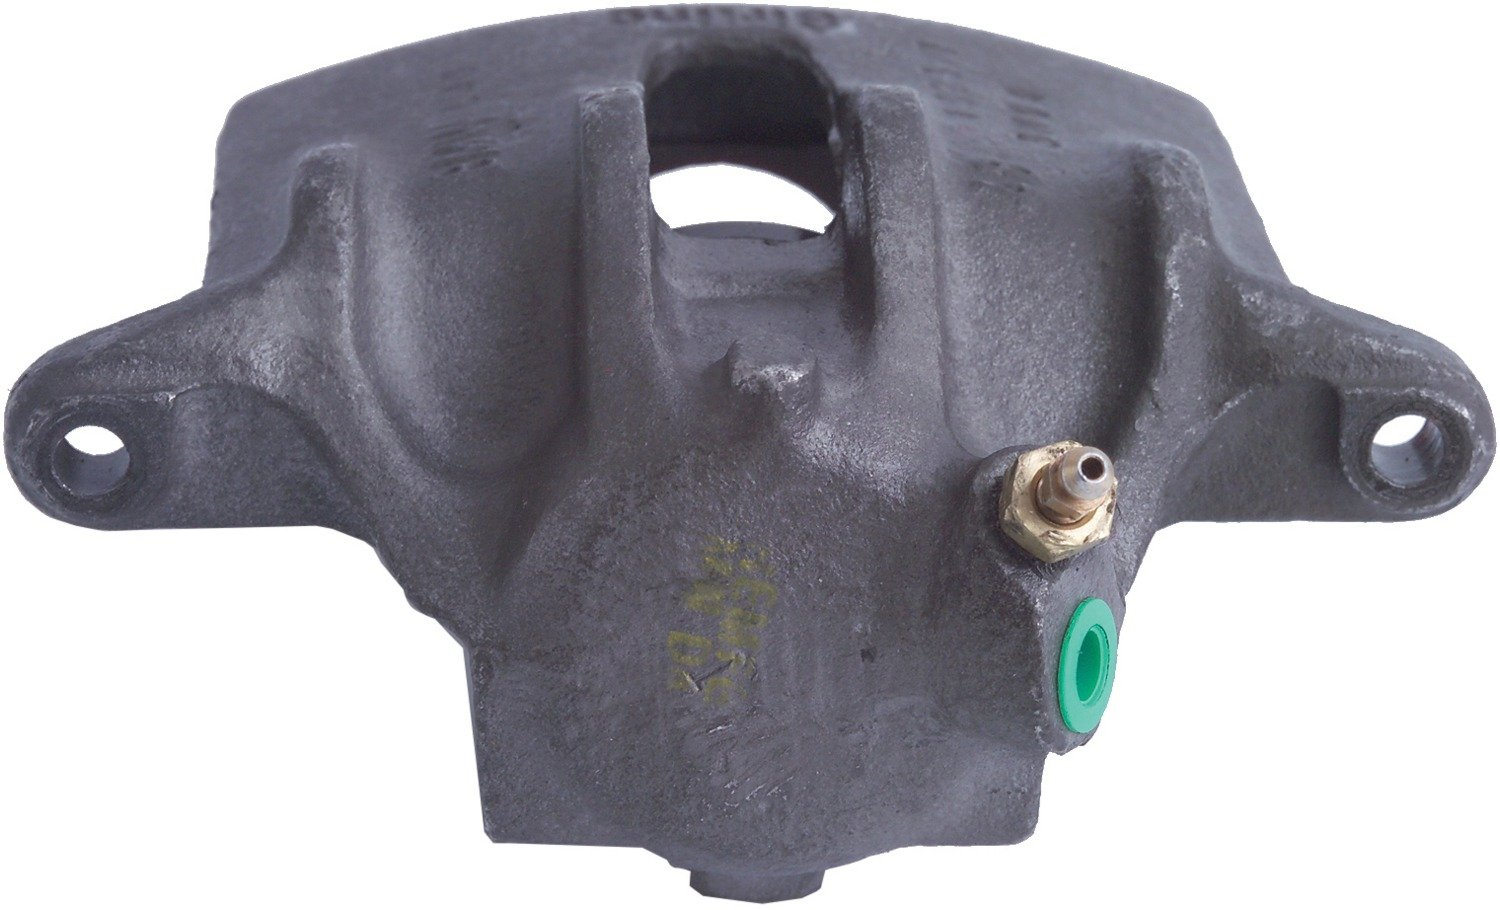 Brake Caliper Unloaded Cardone 19-637 Remanufactured Import Friction Ready